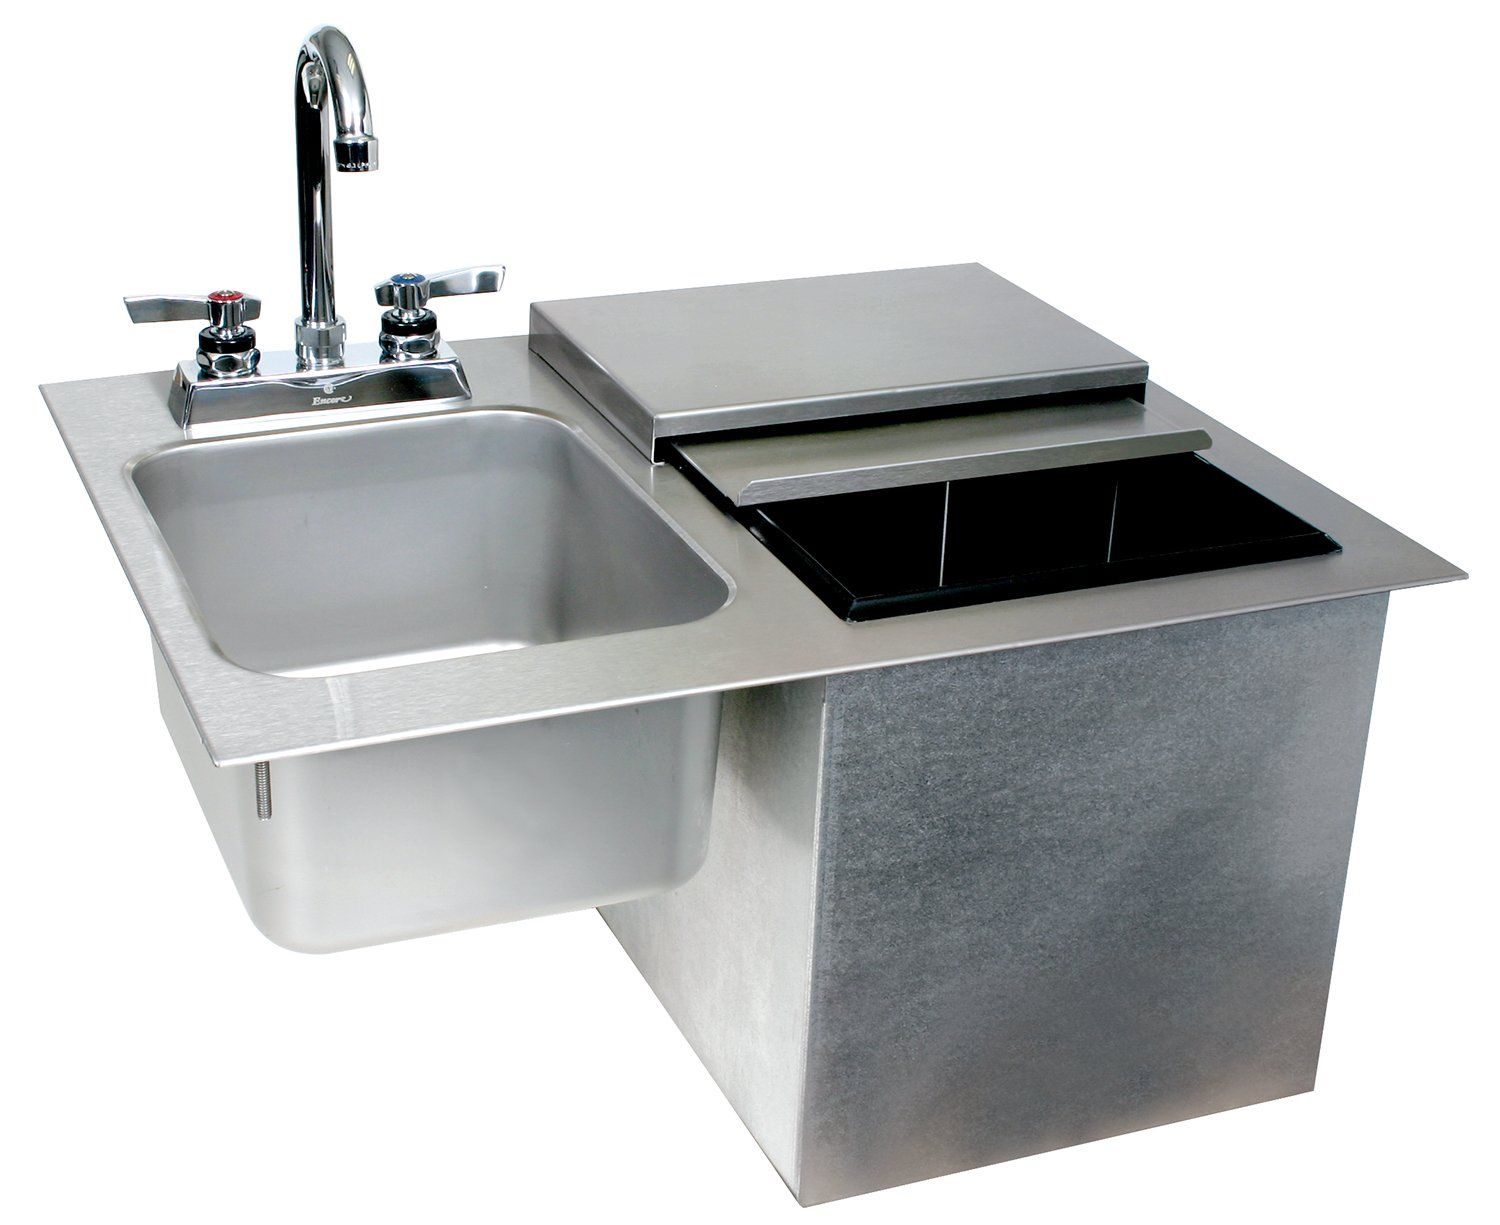 Glastender Commercial Drop-In Ice Bin with Sink & Faucet | Sinks ...